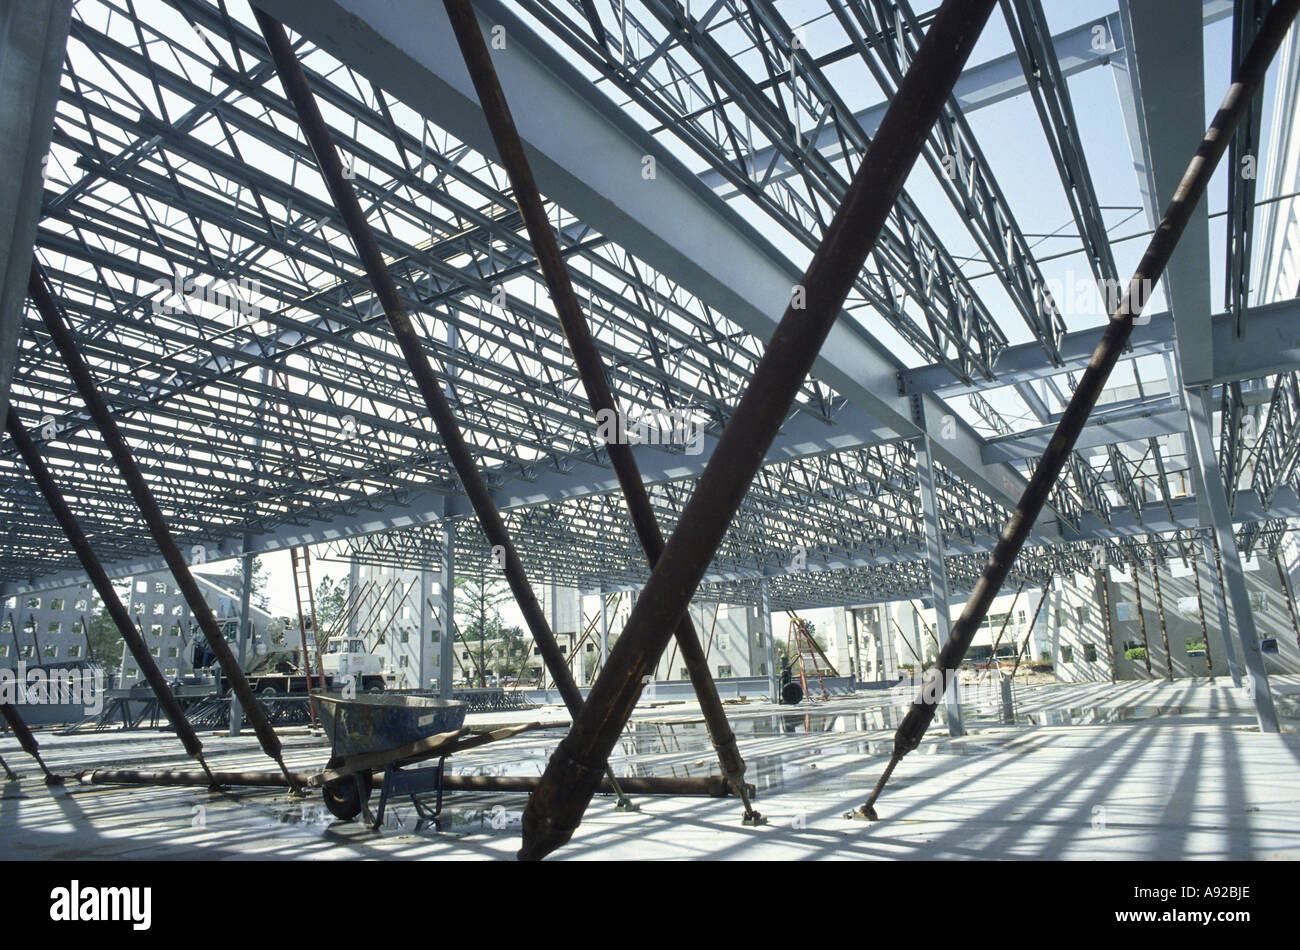 Metal framework at a construction site Stock Photo